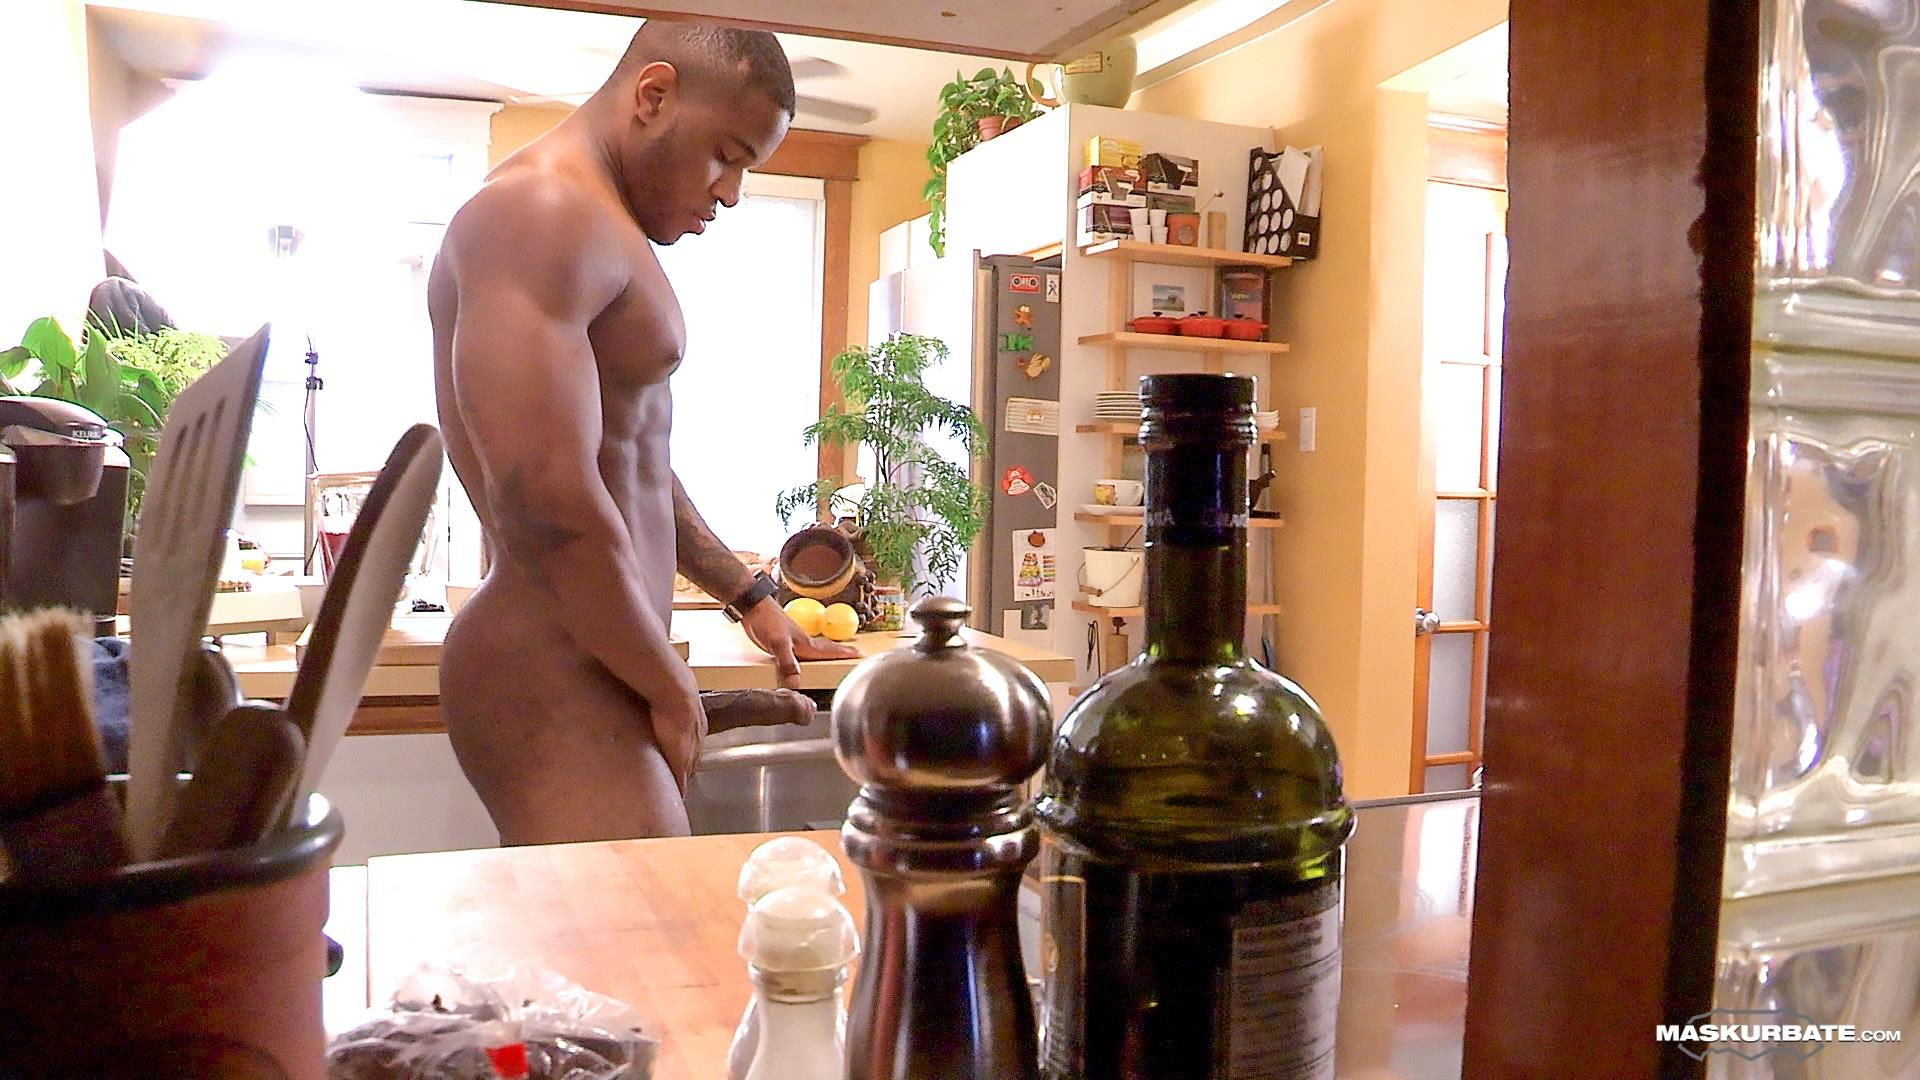 Maskurbate Adam Black Muscle Guy Jerking His Big Black Uncut Cock Amateur Gay Porn 10 Black Bodybuilder Strokes His Big Black Uncut Cock